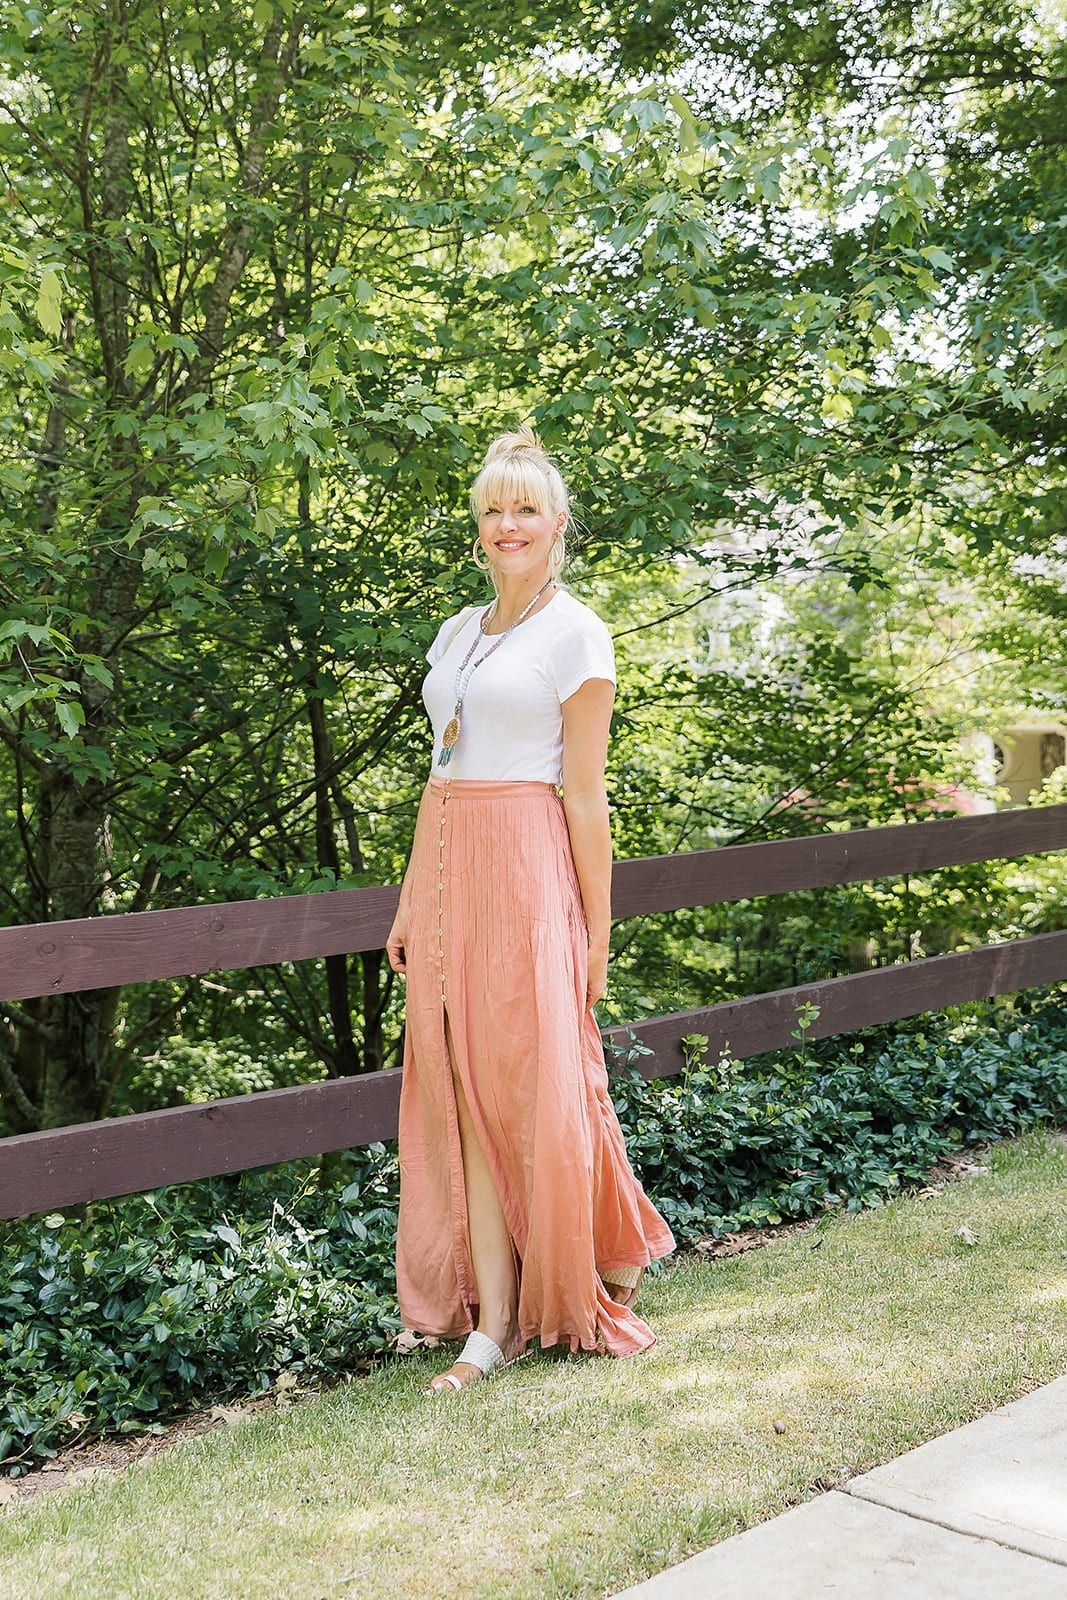 Pleated Maxi Skirt for summer fashion. Pretty color maxi skirt with white bodysuit and summer hairstyle.